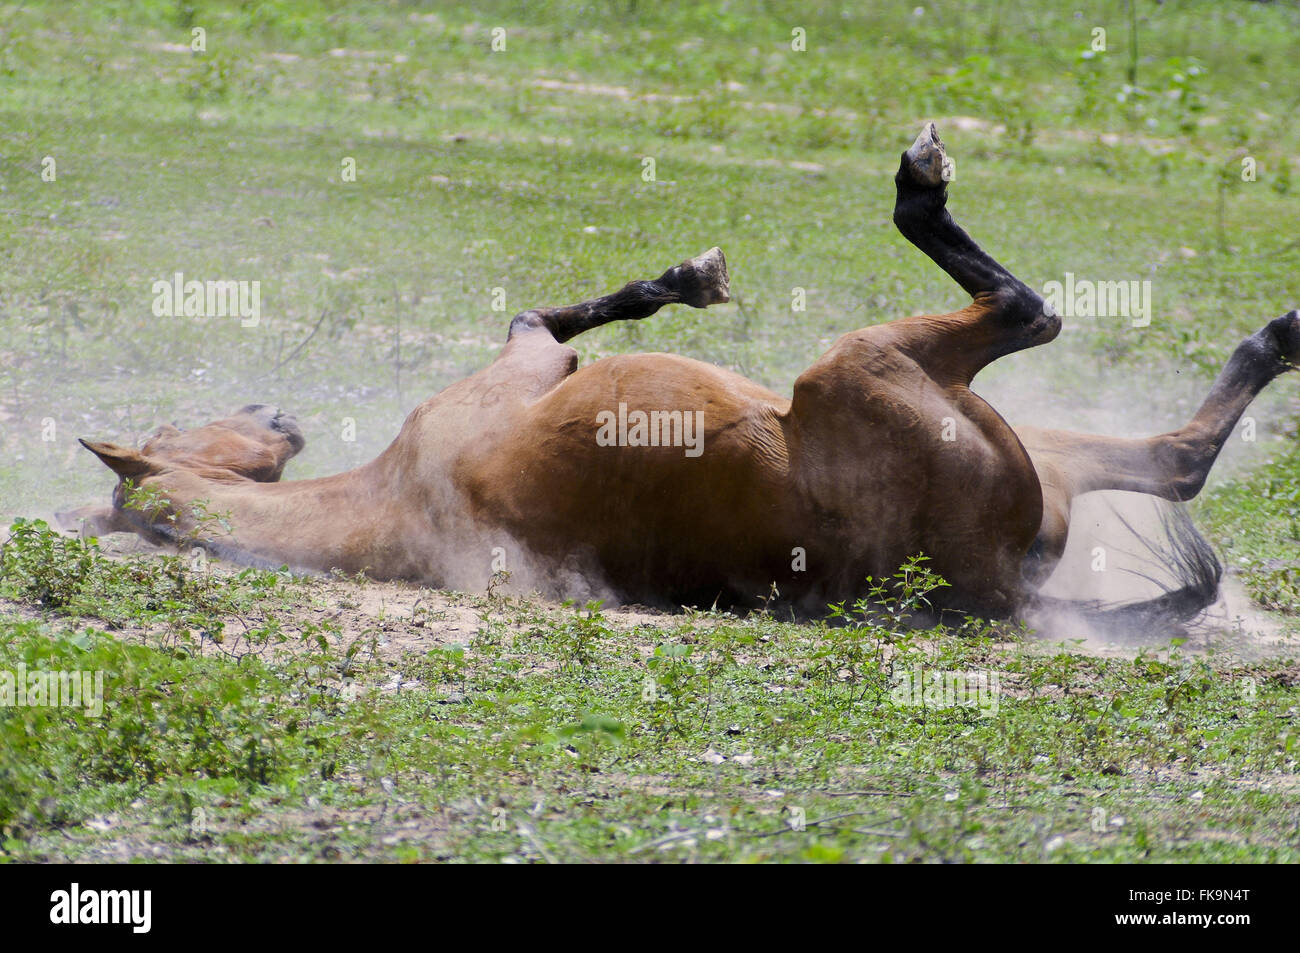 Horse rolling on the ground - one of three subspecies of modern species Equus ferus - Stock Image